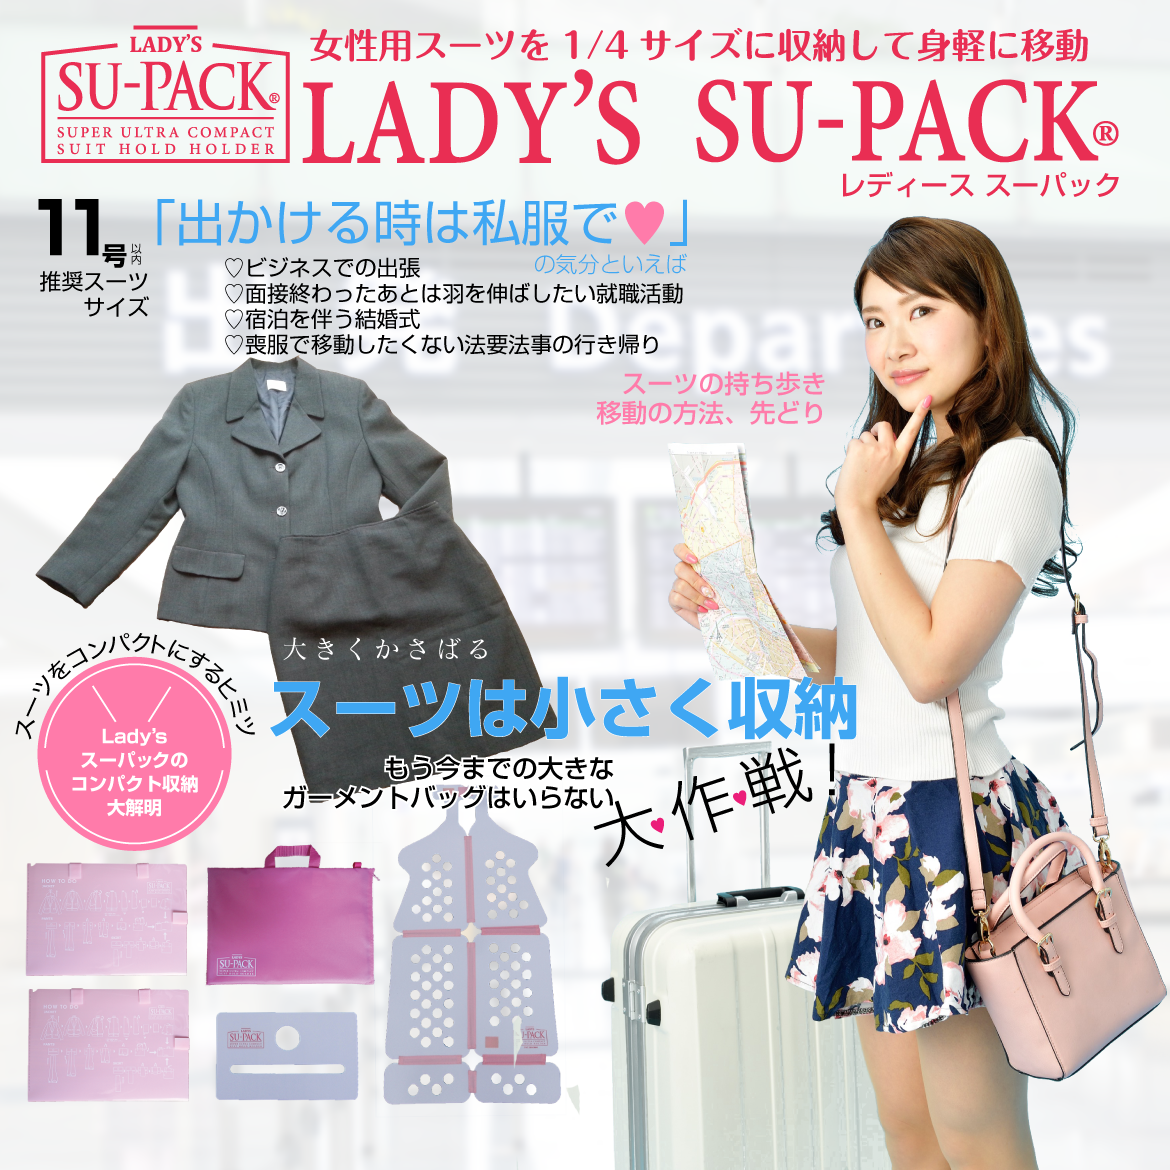 LADYS SU-PACK BLUE レディーススーパックピンク1